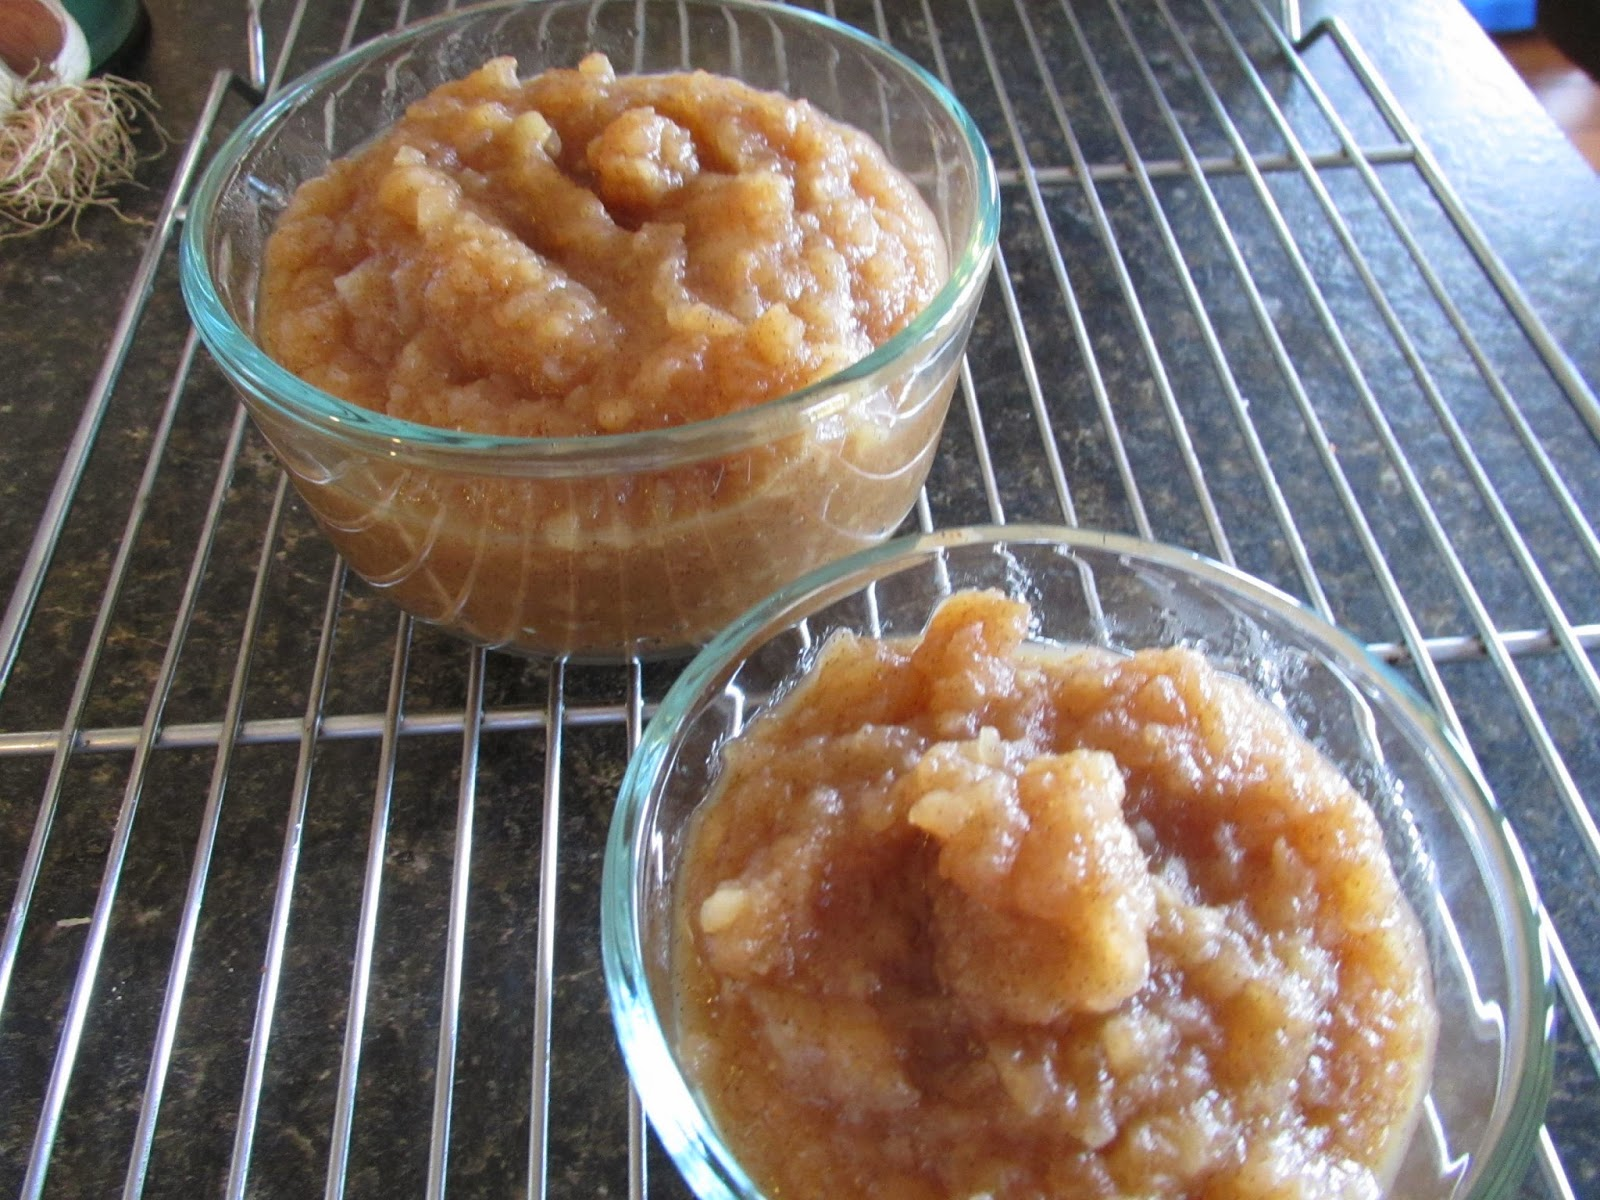 Finished spiced vanilla pear & apple jam in a 2 cup and 1 cup ...